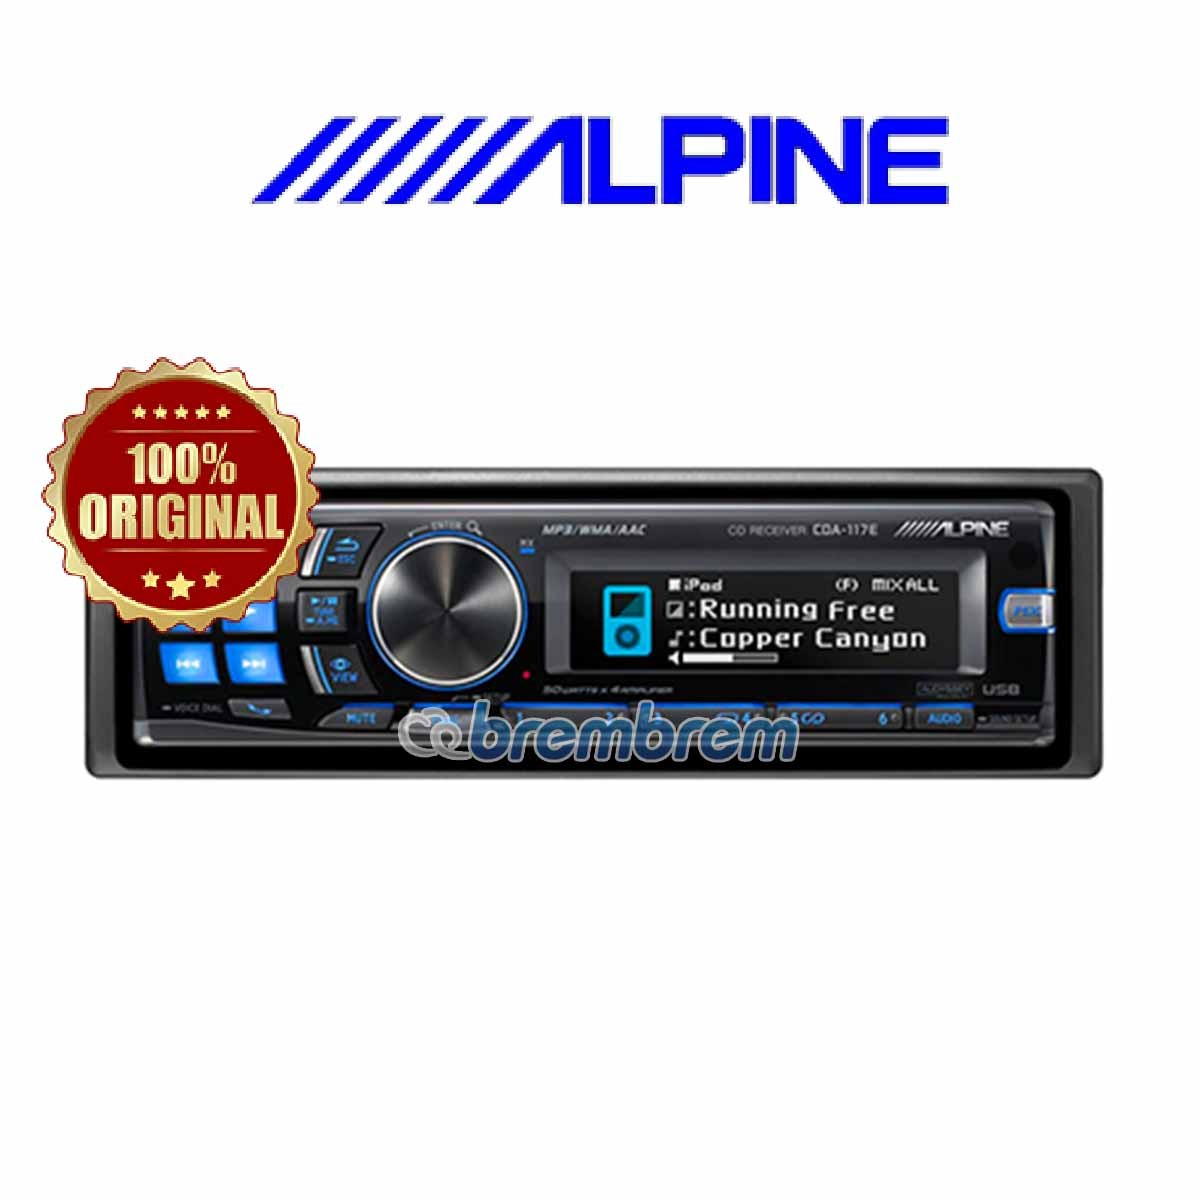 ALPINE CDA-117E - HEADUNIT SINGLE DIN